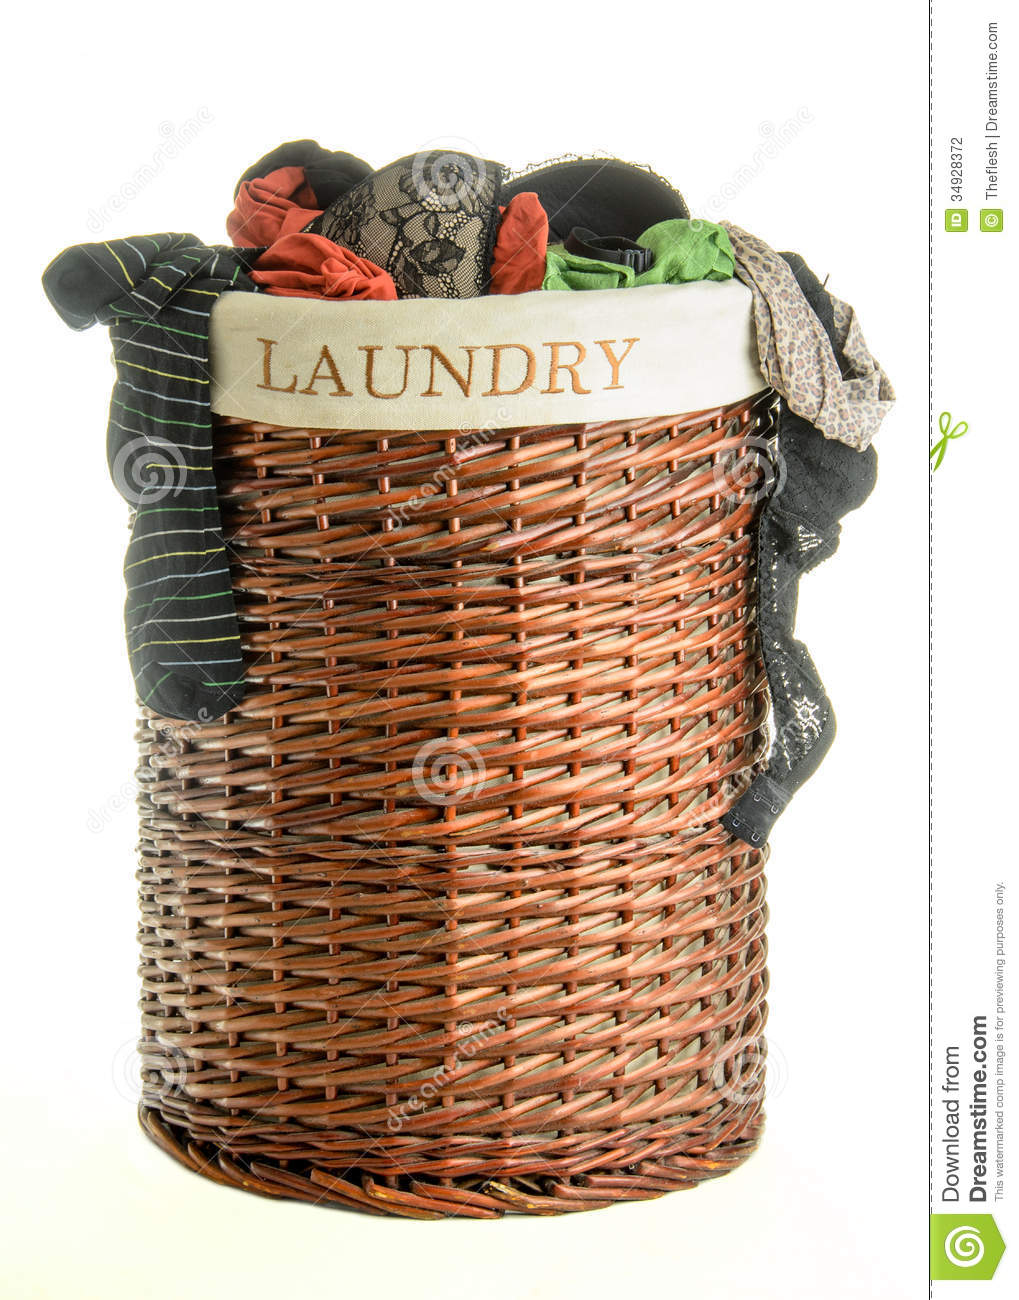 Stock Photography: Laundry basket with clothes. Image: 34928372